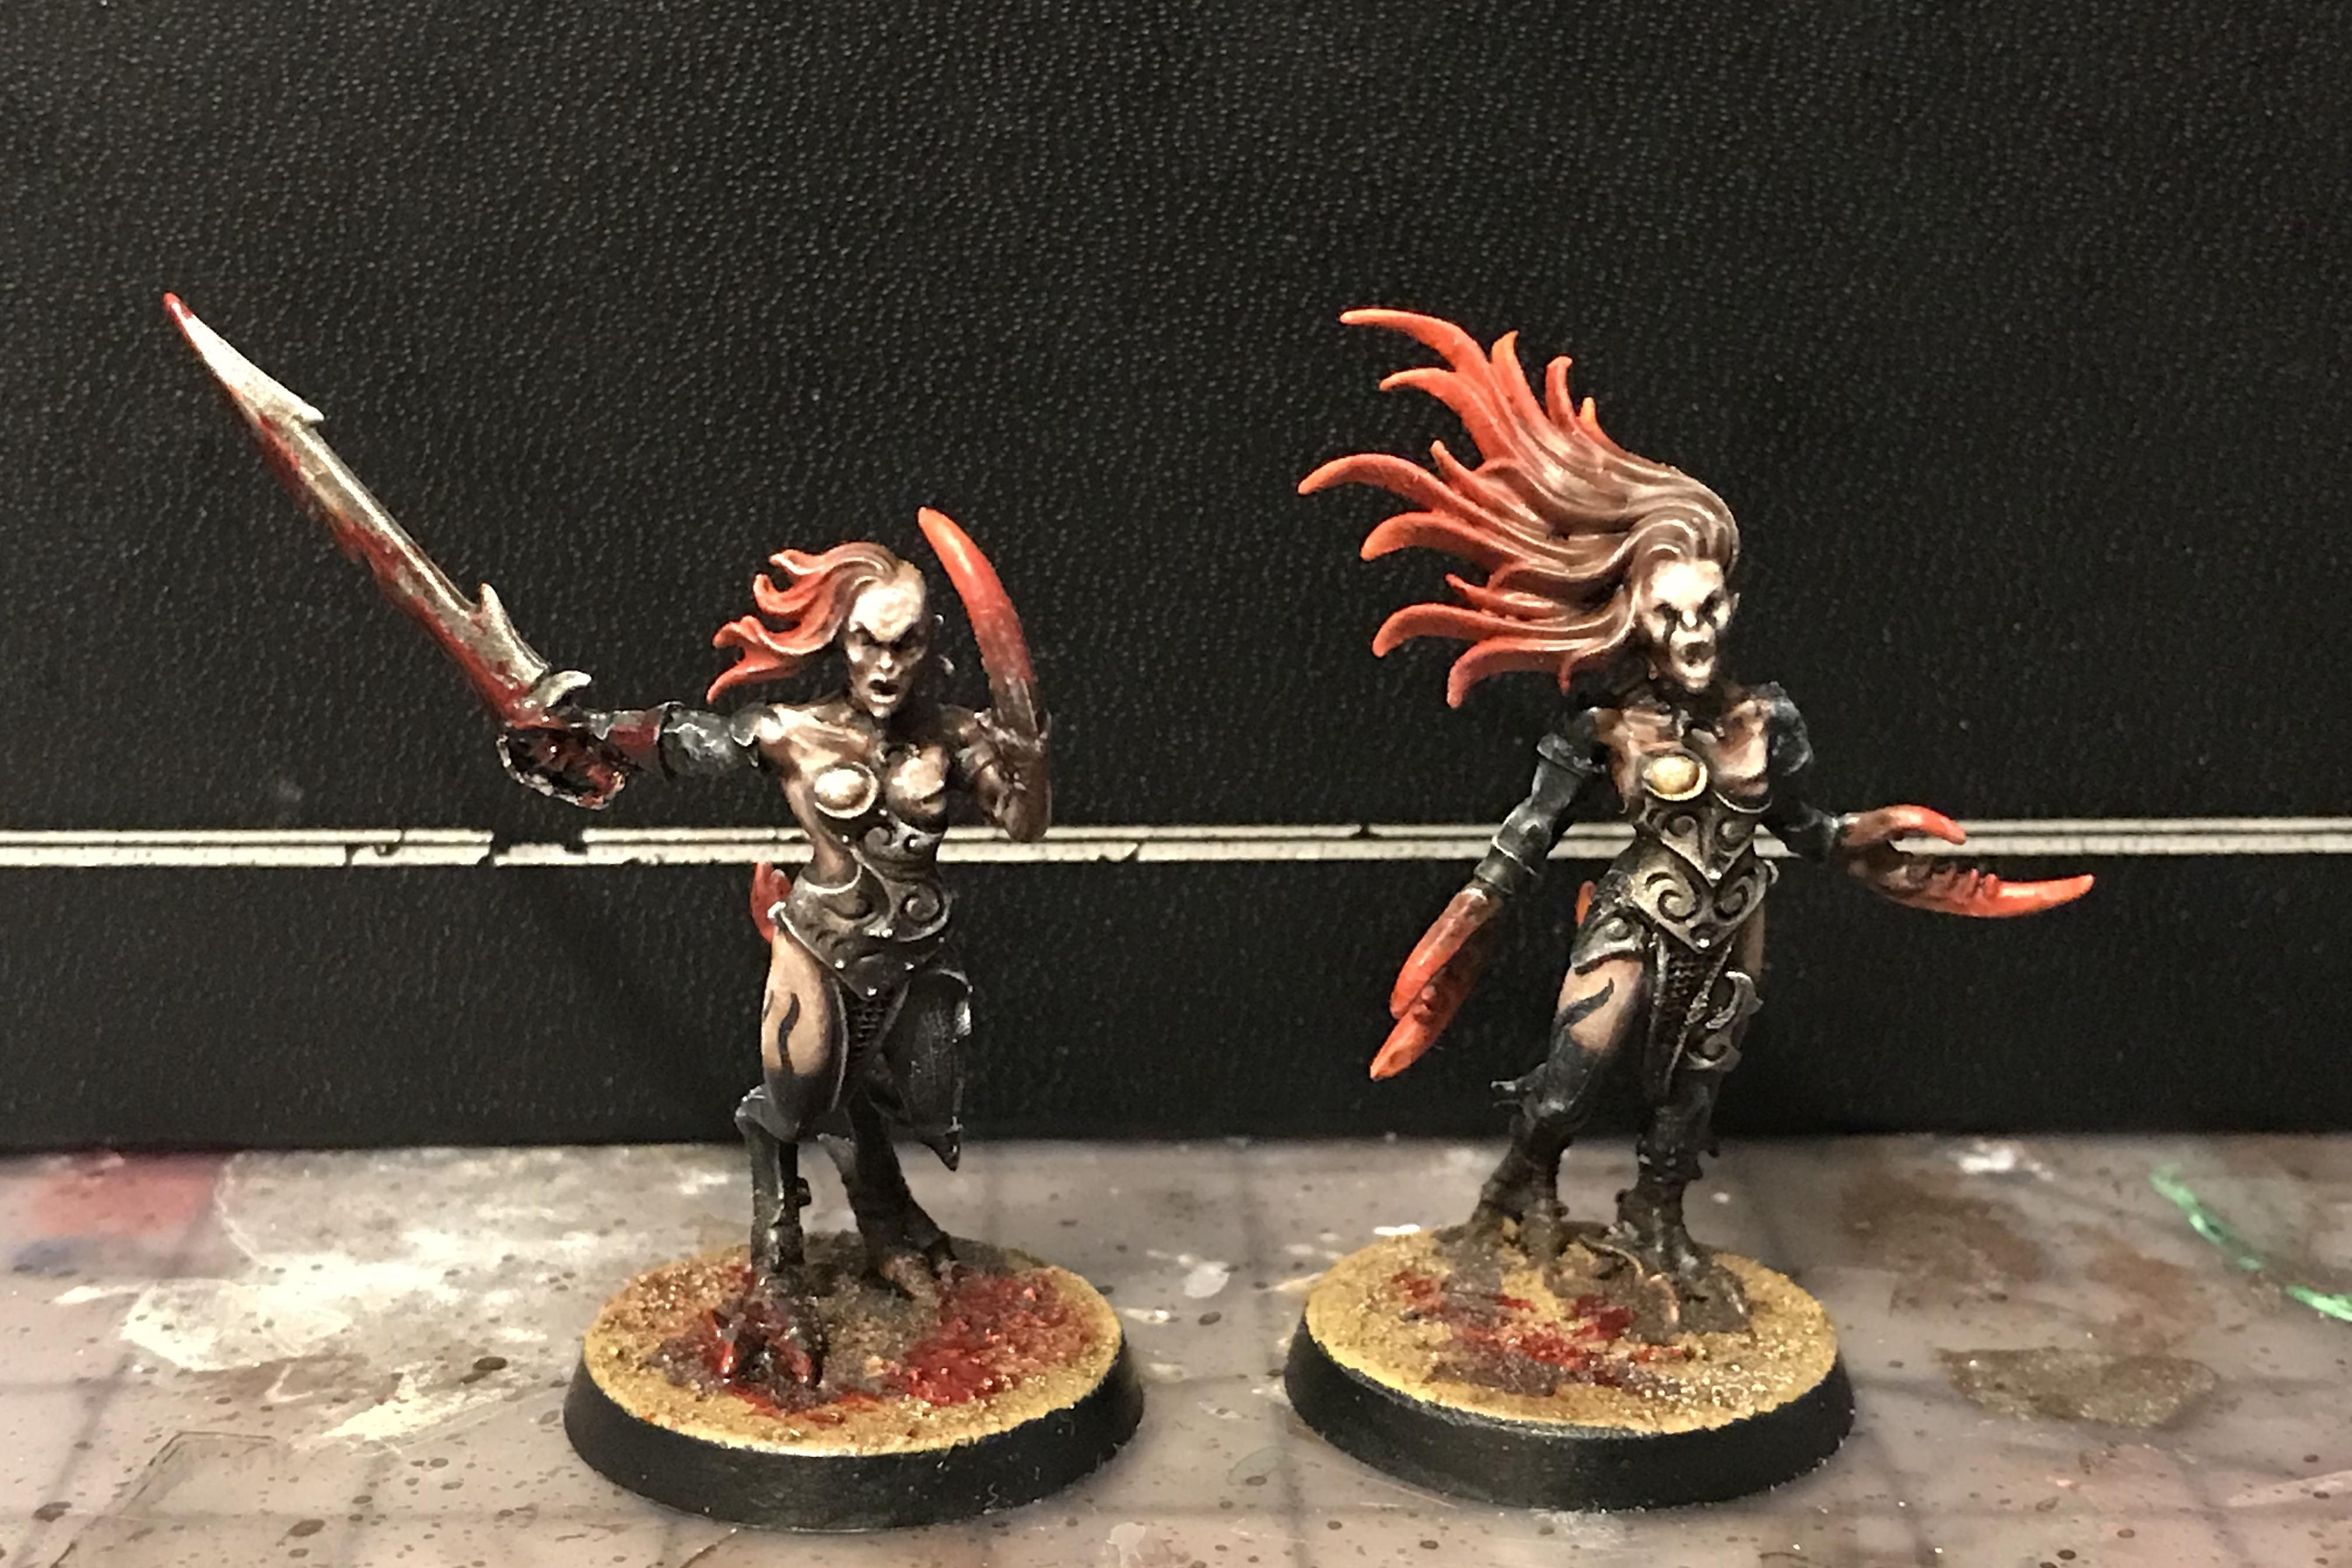 Aelves, Alf, Aos28, Battle, Battles, Chaos, Cult, Daemonettes, Daemons, Dark, Darkness, Druchii, Elves, Evil, Excess, Gods, Mordheim, Of, Perfection, Plastic, Pleasure, Realms, Red, Sensual, Servants, Slaanesh, Warhammer Fantasy, Warm, Warp